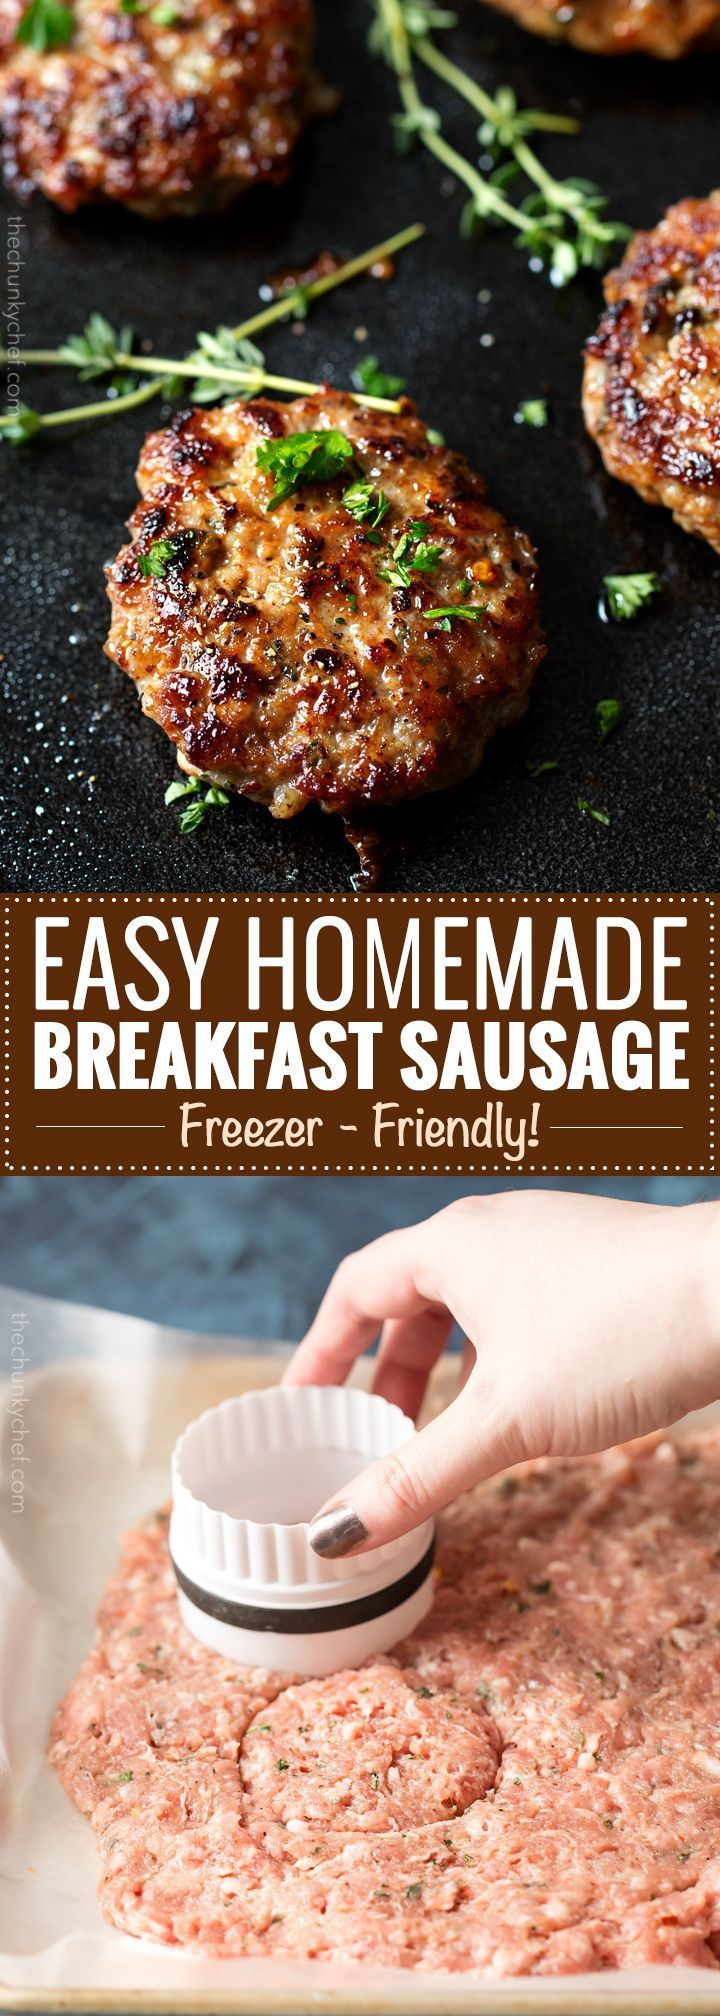 Homemade Maple Breakfast Sausage | These breakfast sausage patties are made with a combo of ground turkey and pork, savory herbs, and sweet maple syrup. The mouthwatering combo gives way to a low calorie homemade version of your favorite breakfast food! | http://thechunkychef.com